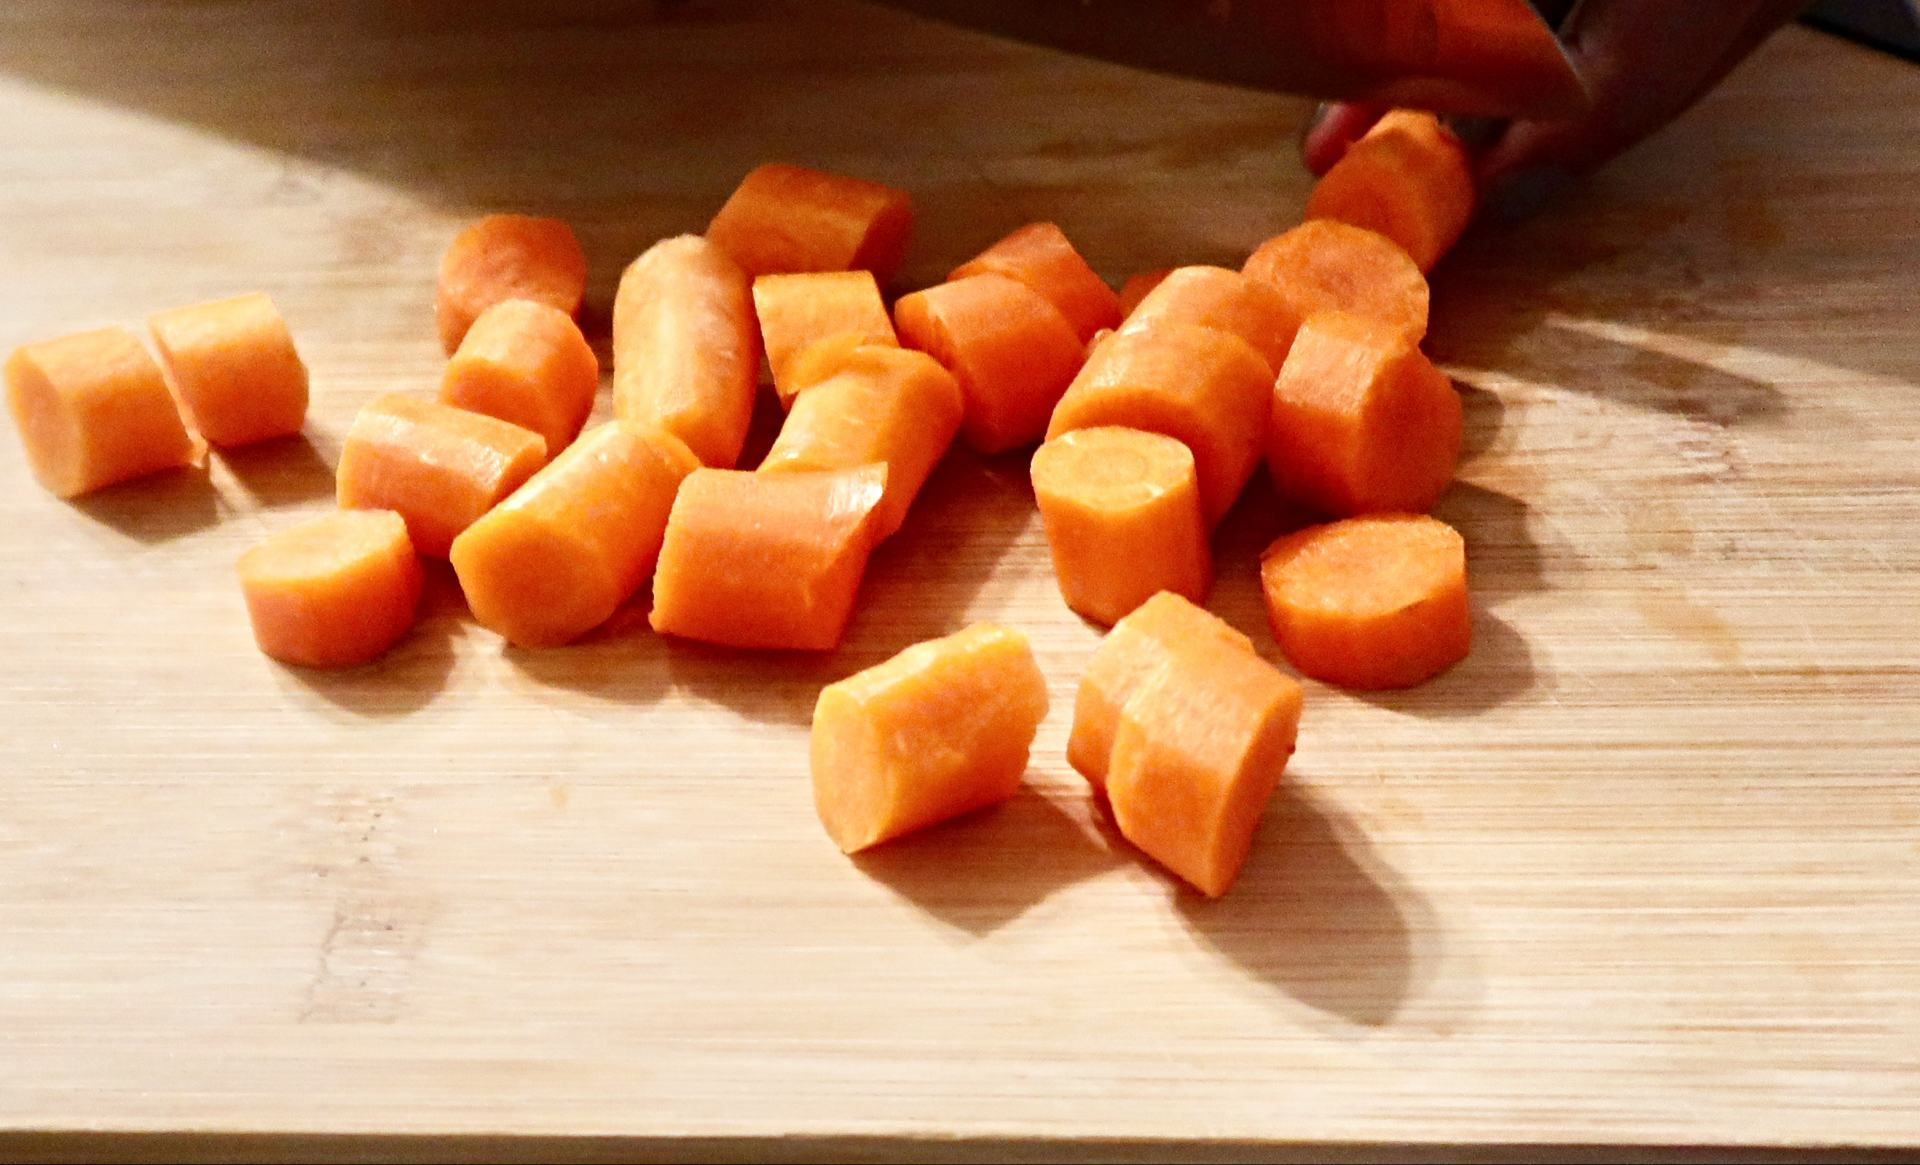 How to Chop carrots for an oxtail recipe